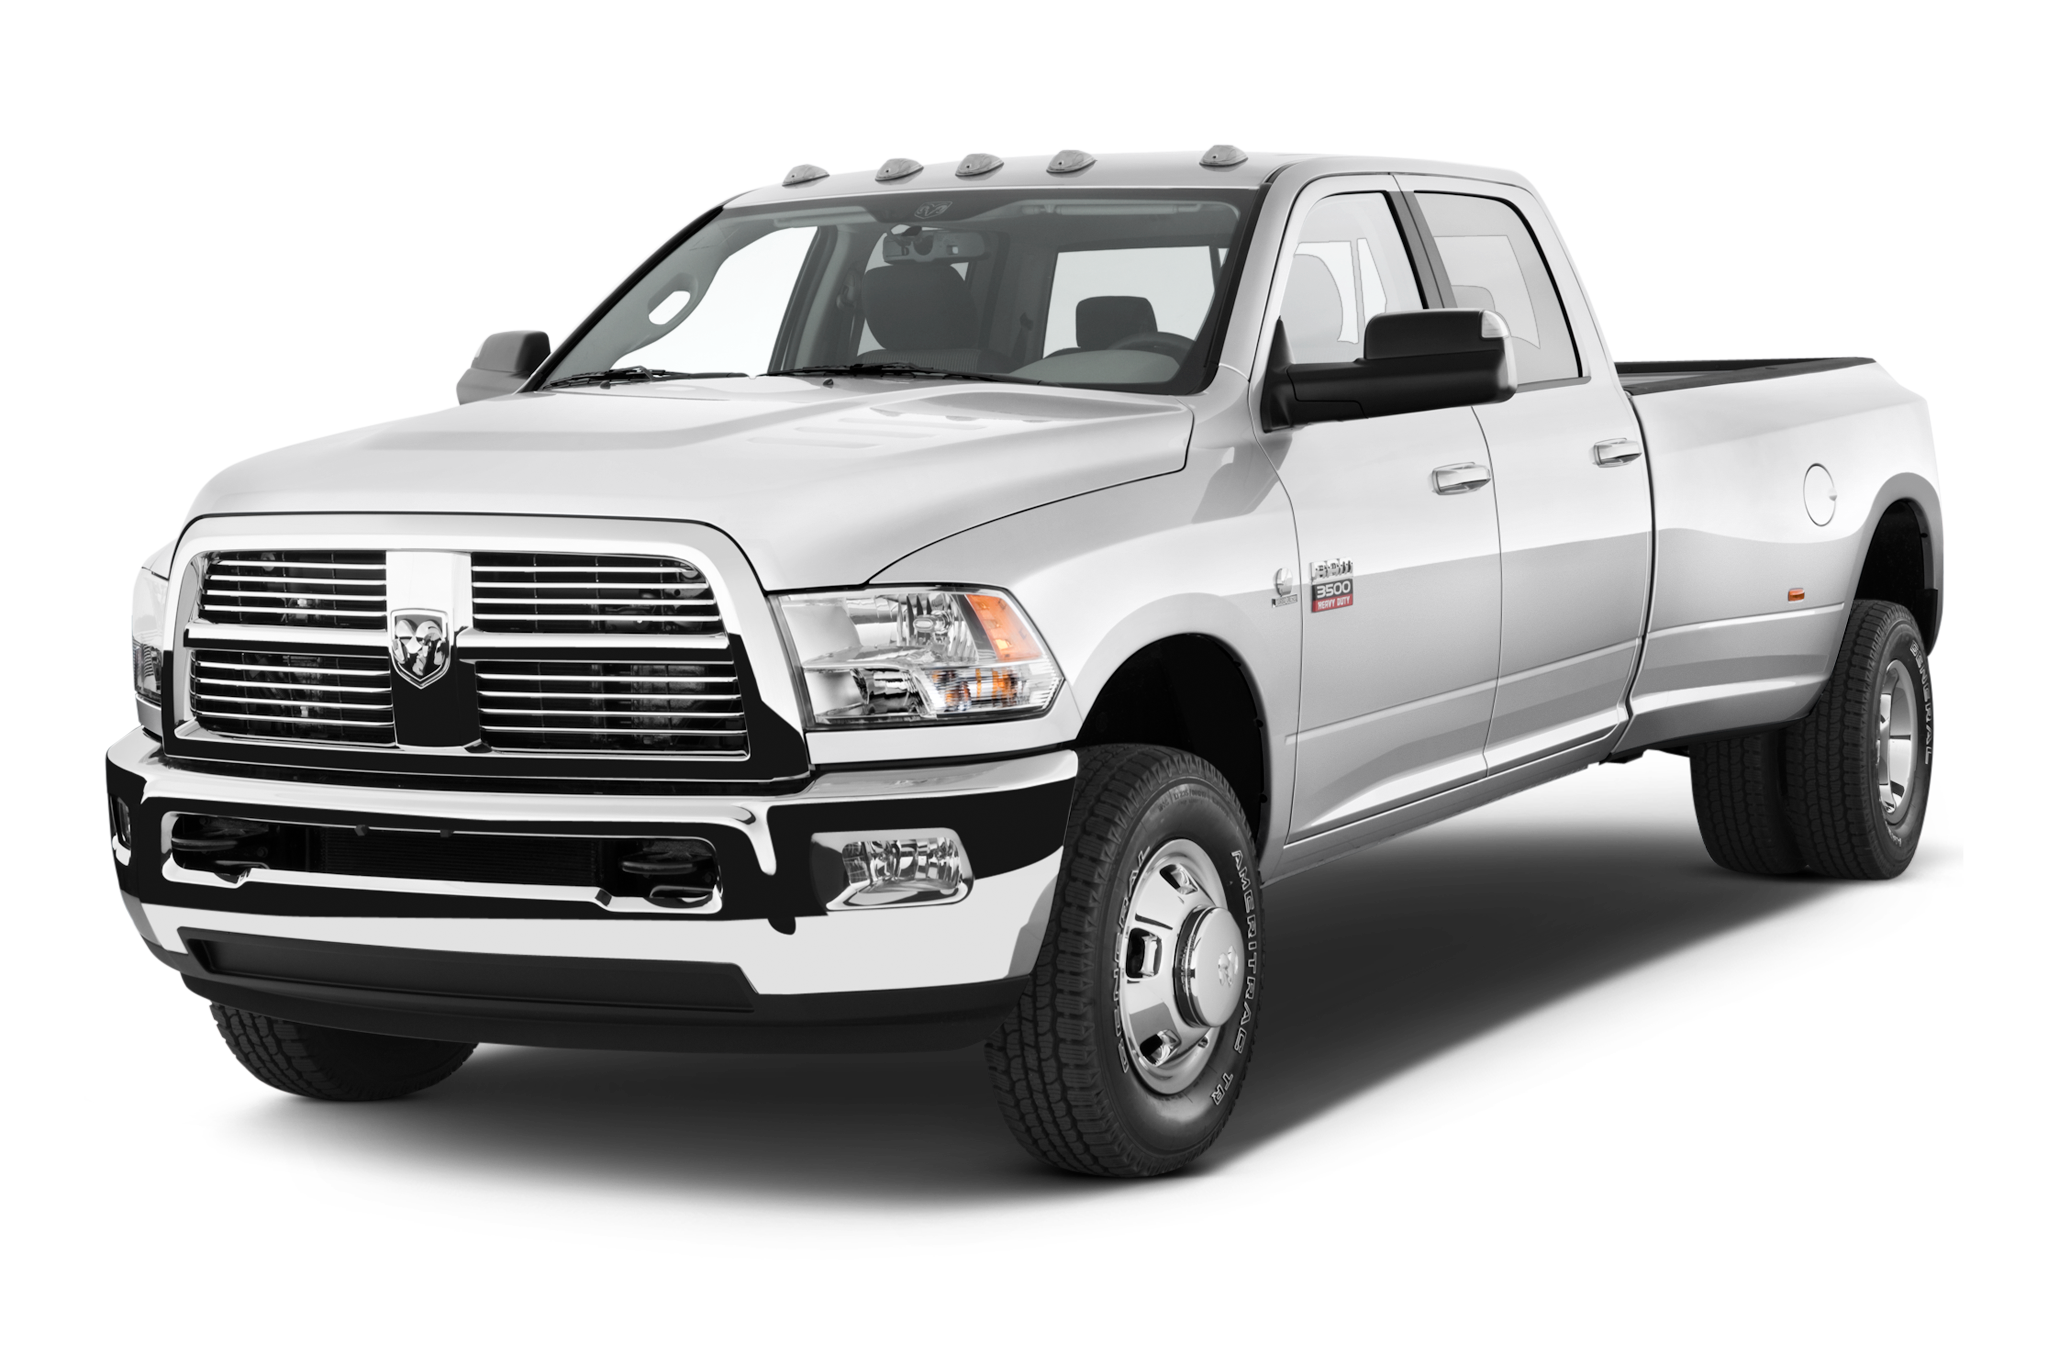 N e dodge a week with the 2010 ram 3500 mega cab - Crew cab dodge ram ...